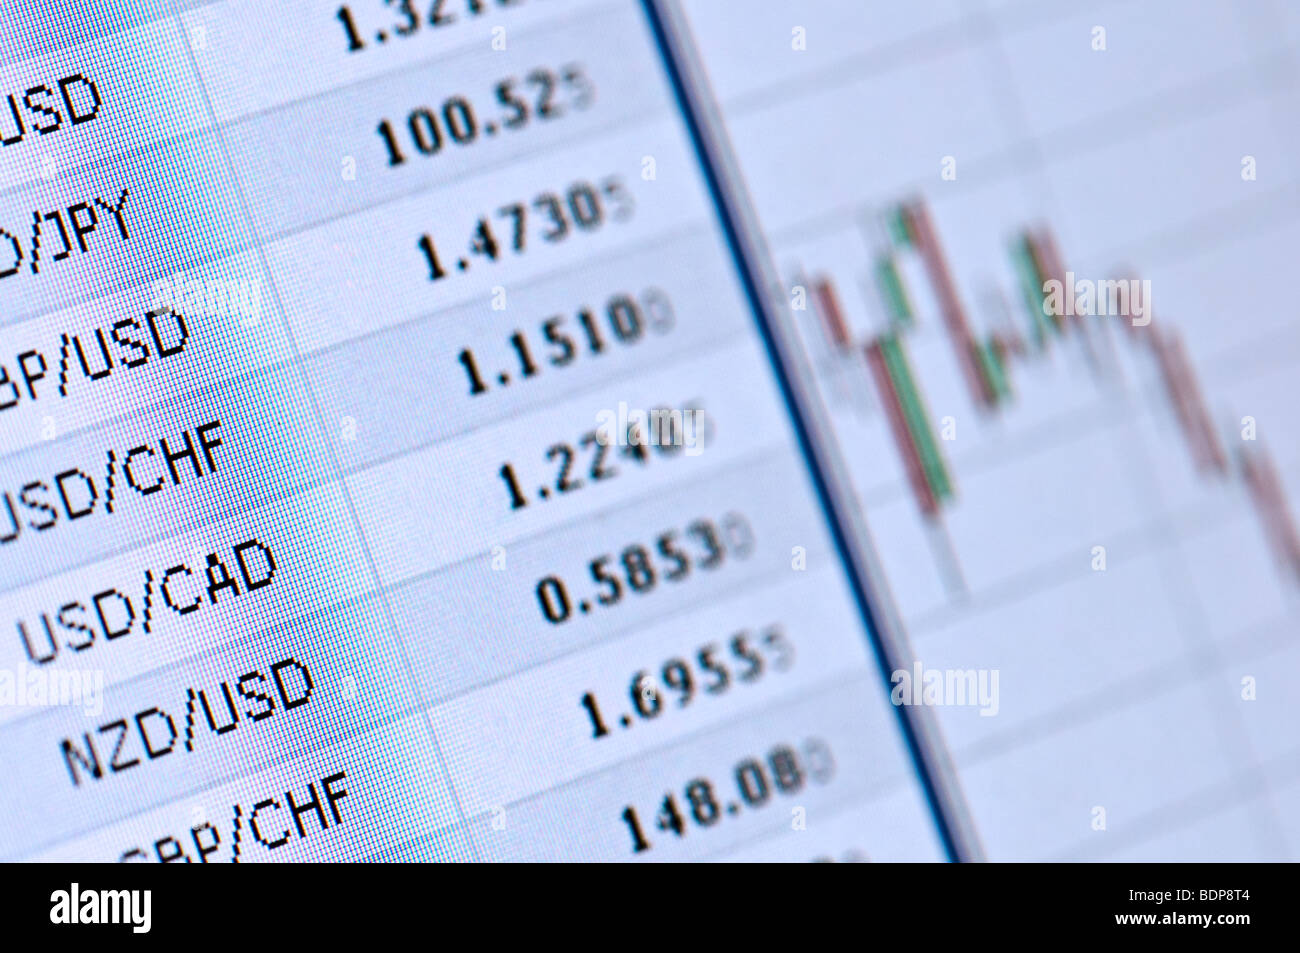 Finance market quotes on the monitor - Stock Image